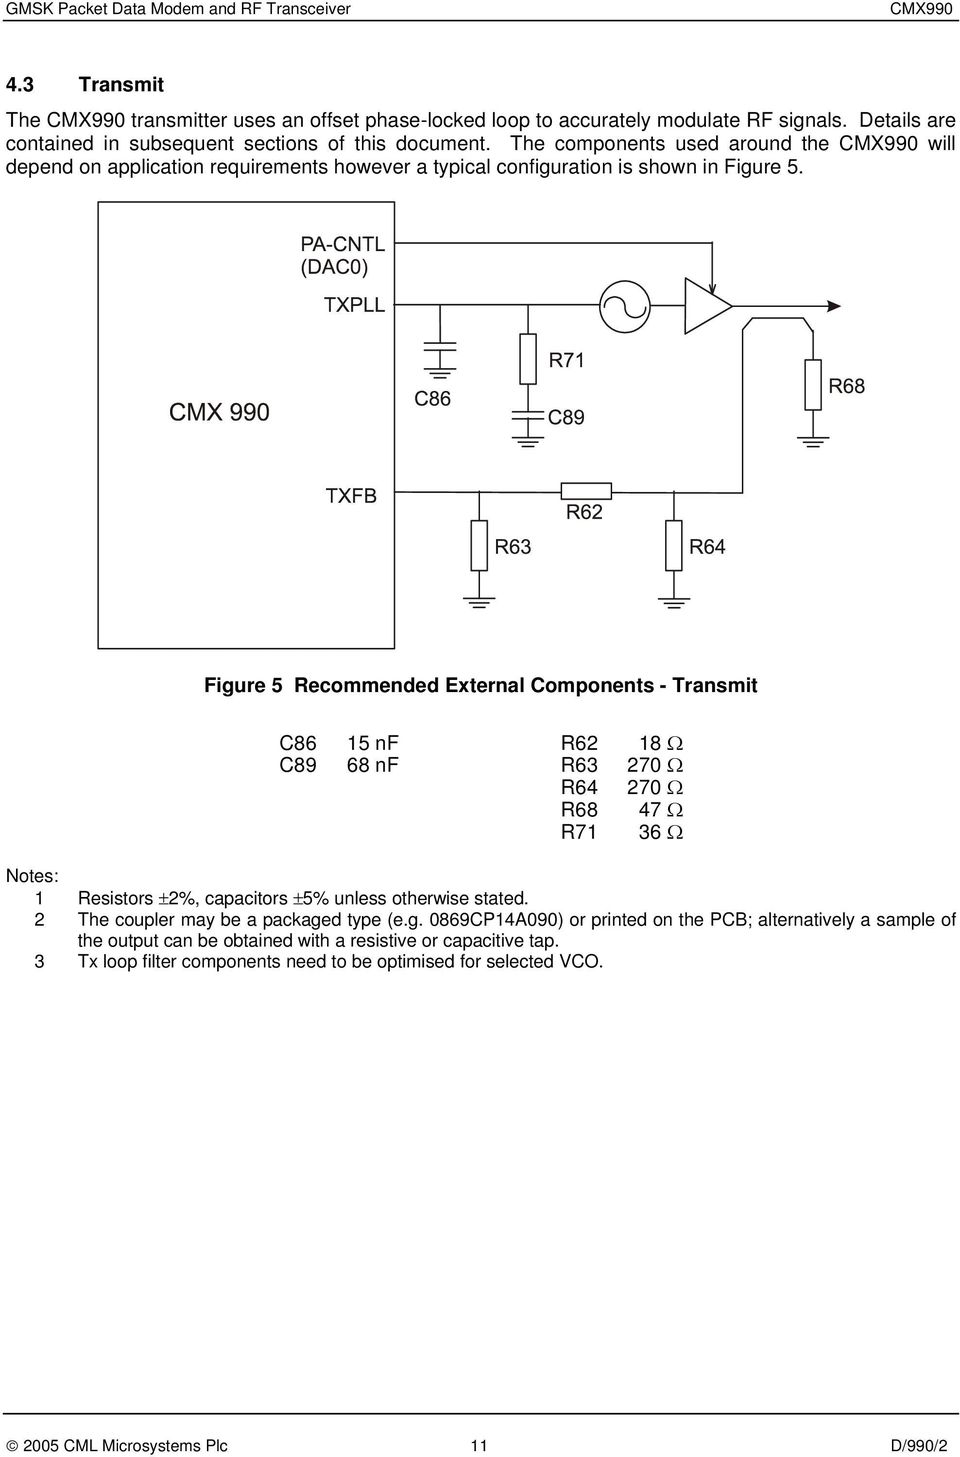 Cmx990 Gmsk Packet Data Modem And Rf Transceiver Pdf Figure 1113 A Simple Voice Scrambling Descrambling Circuit At 5 Recommended External Components Transmit C86 15 Nf R62 18 C89 68